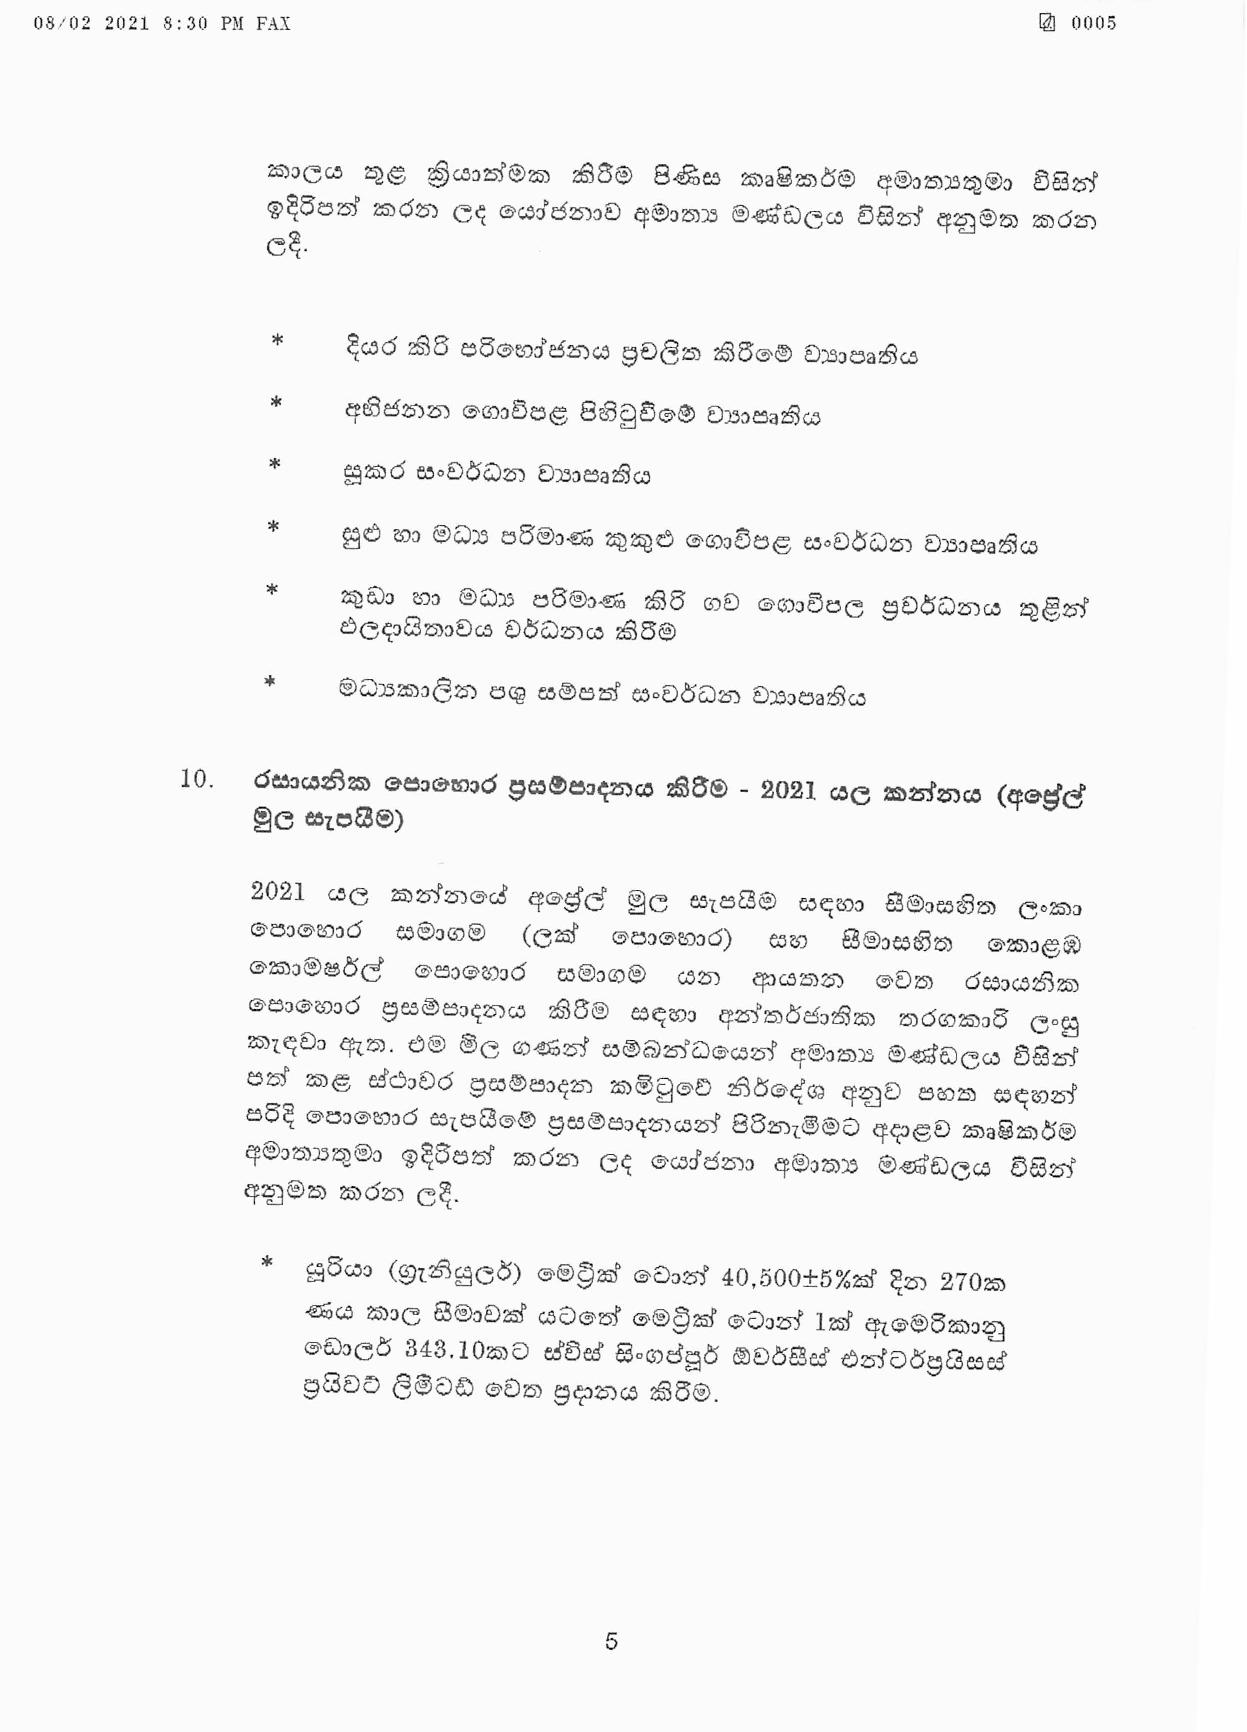 Cabinet Decision on 08.02.2021 page 005